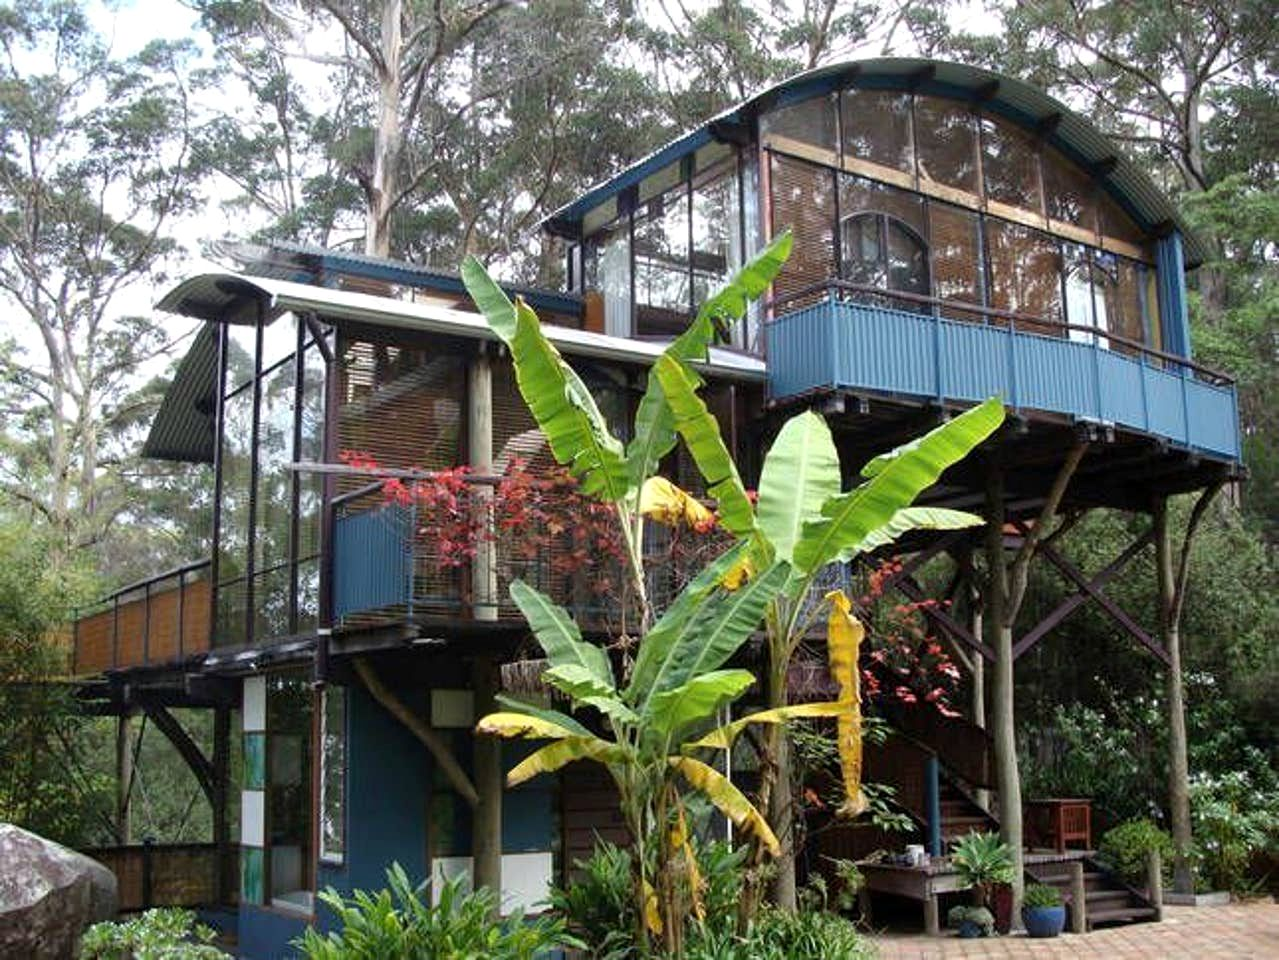 Looking for a tree house vacation? Check out this gorgeous rental, surrounded by beautiful forest and natural surroundings!